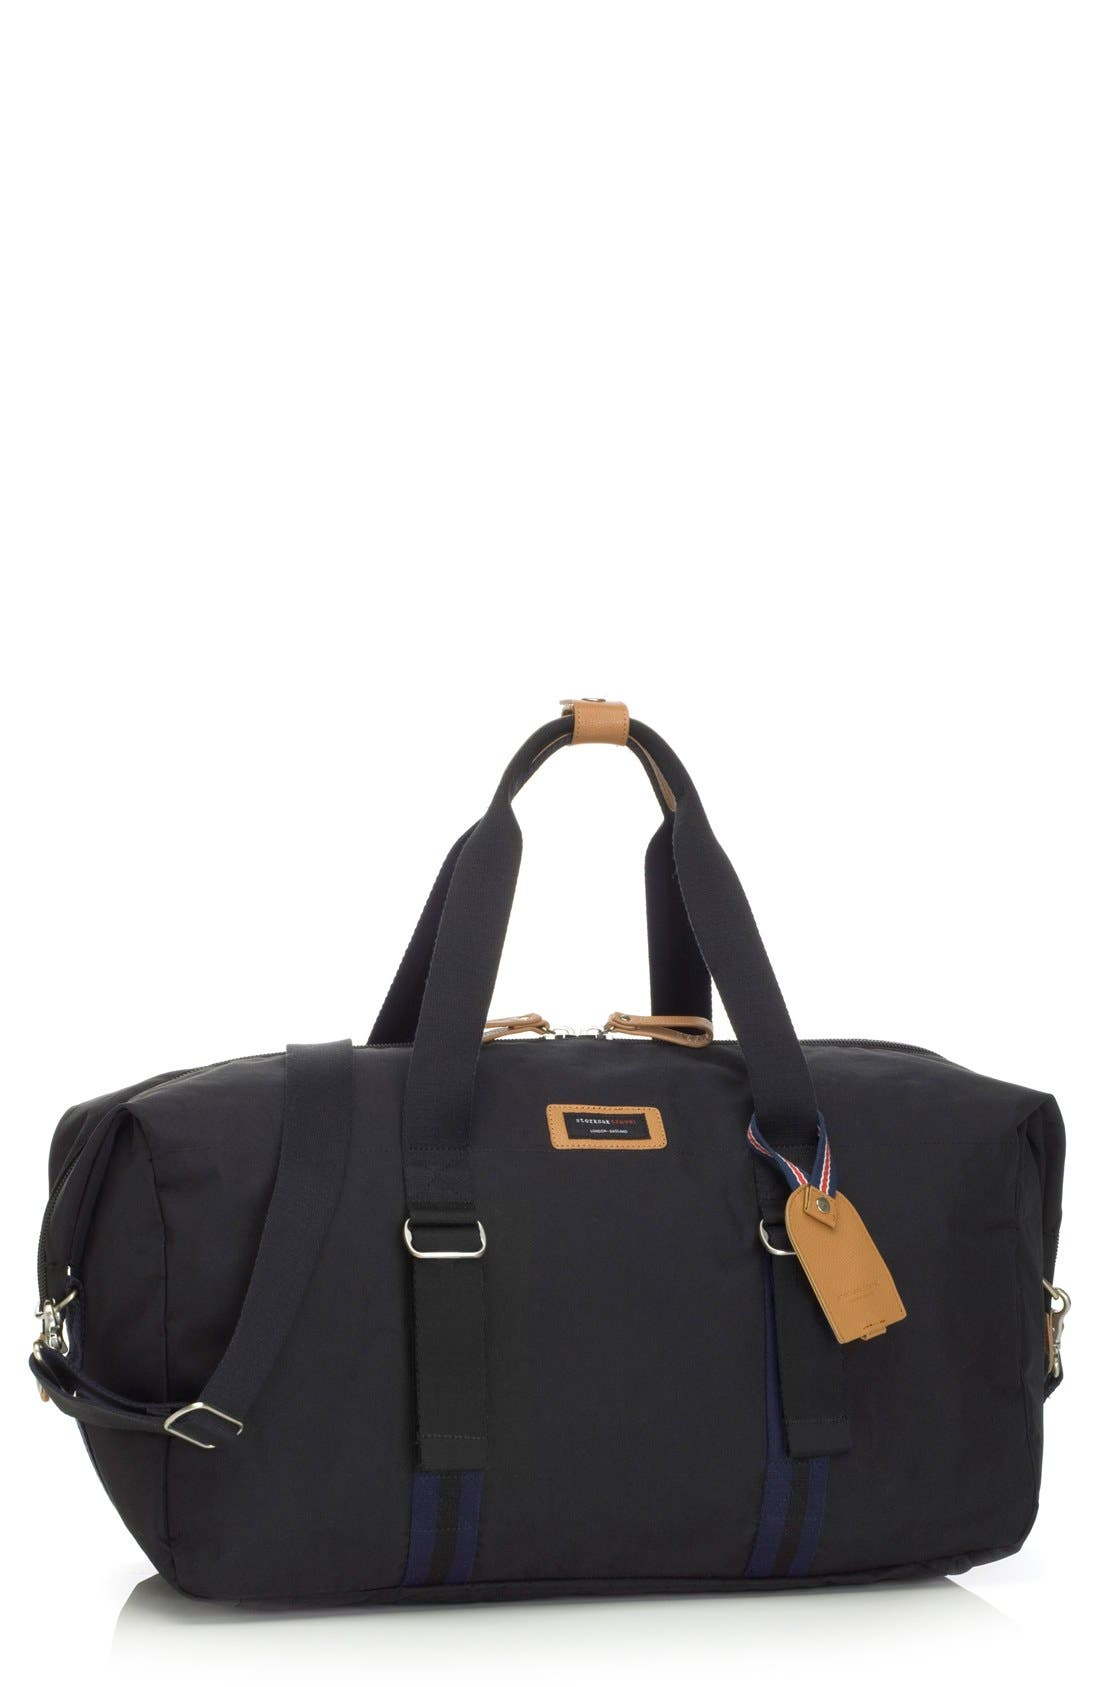 Storksak Travel Duffel with Hanging Organizer Nordstrom